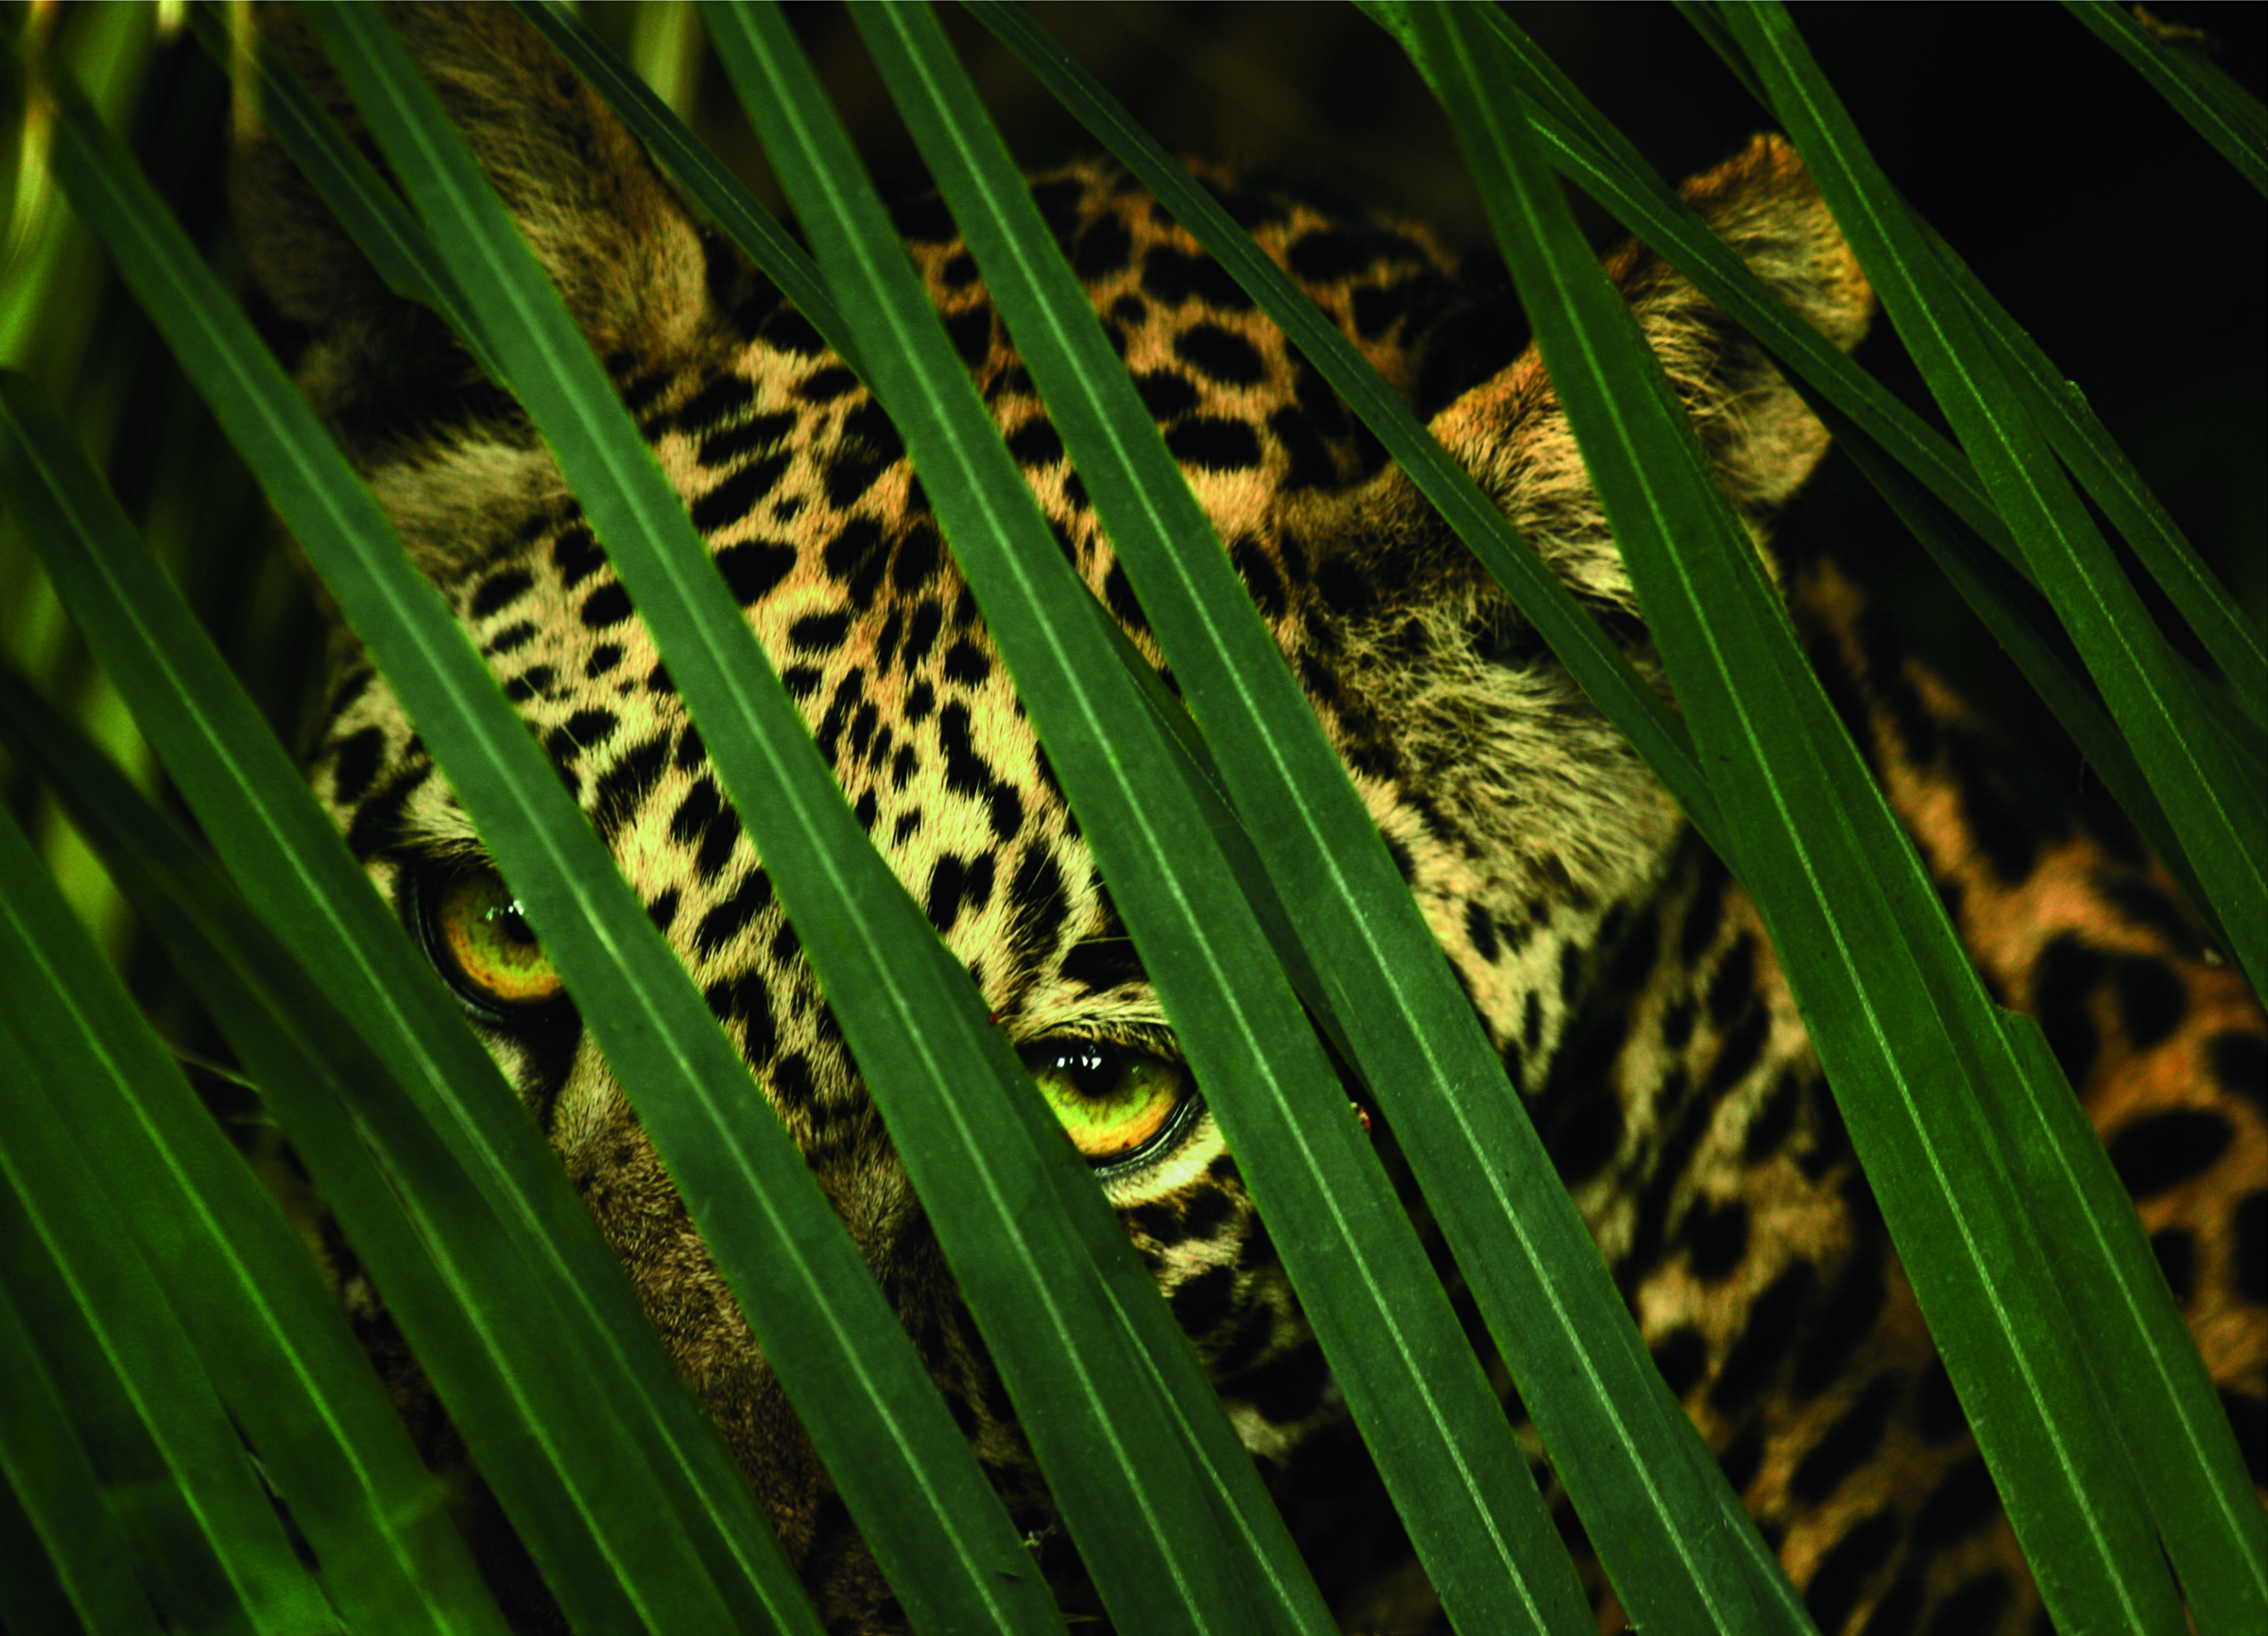 A leopard's spotted coat provides camouflage in the dense forest.